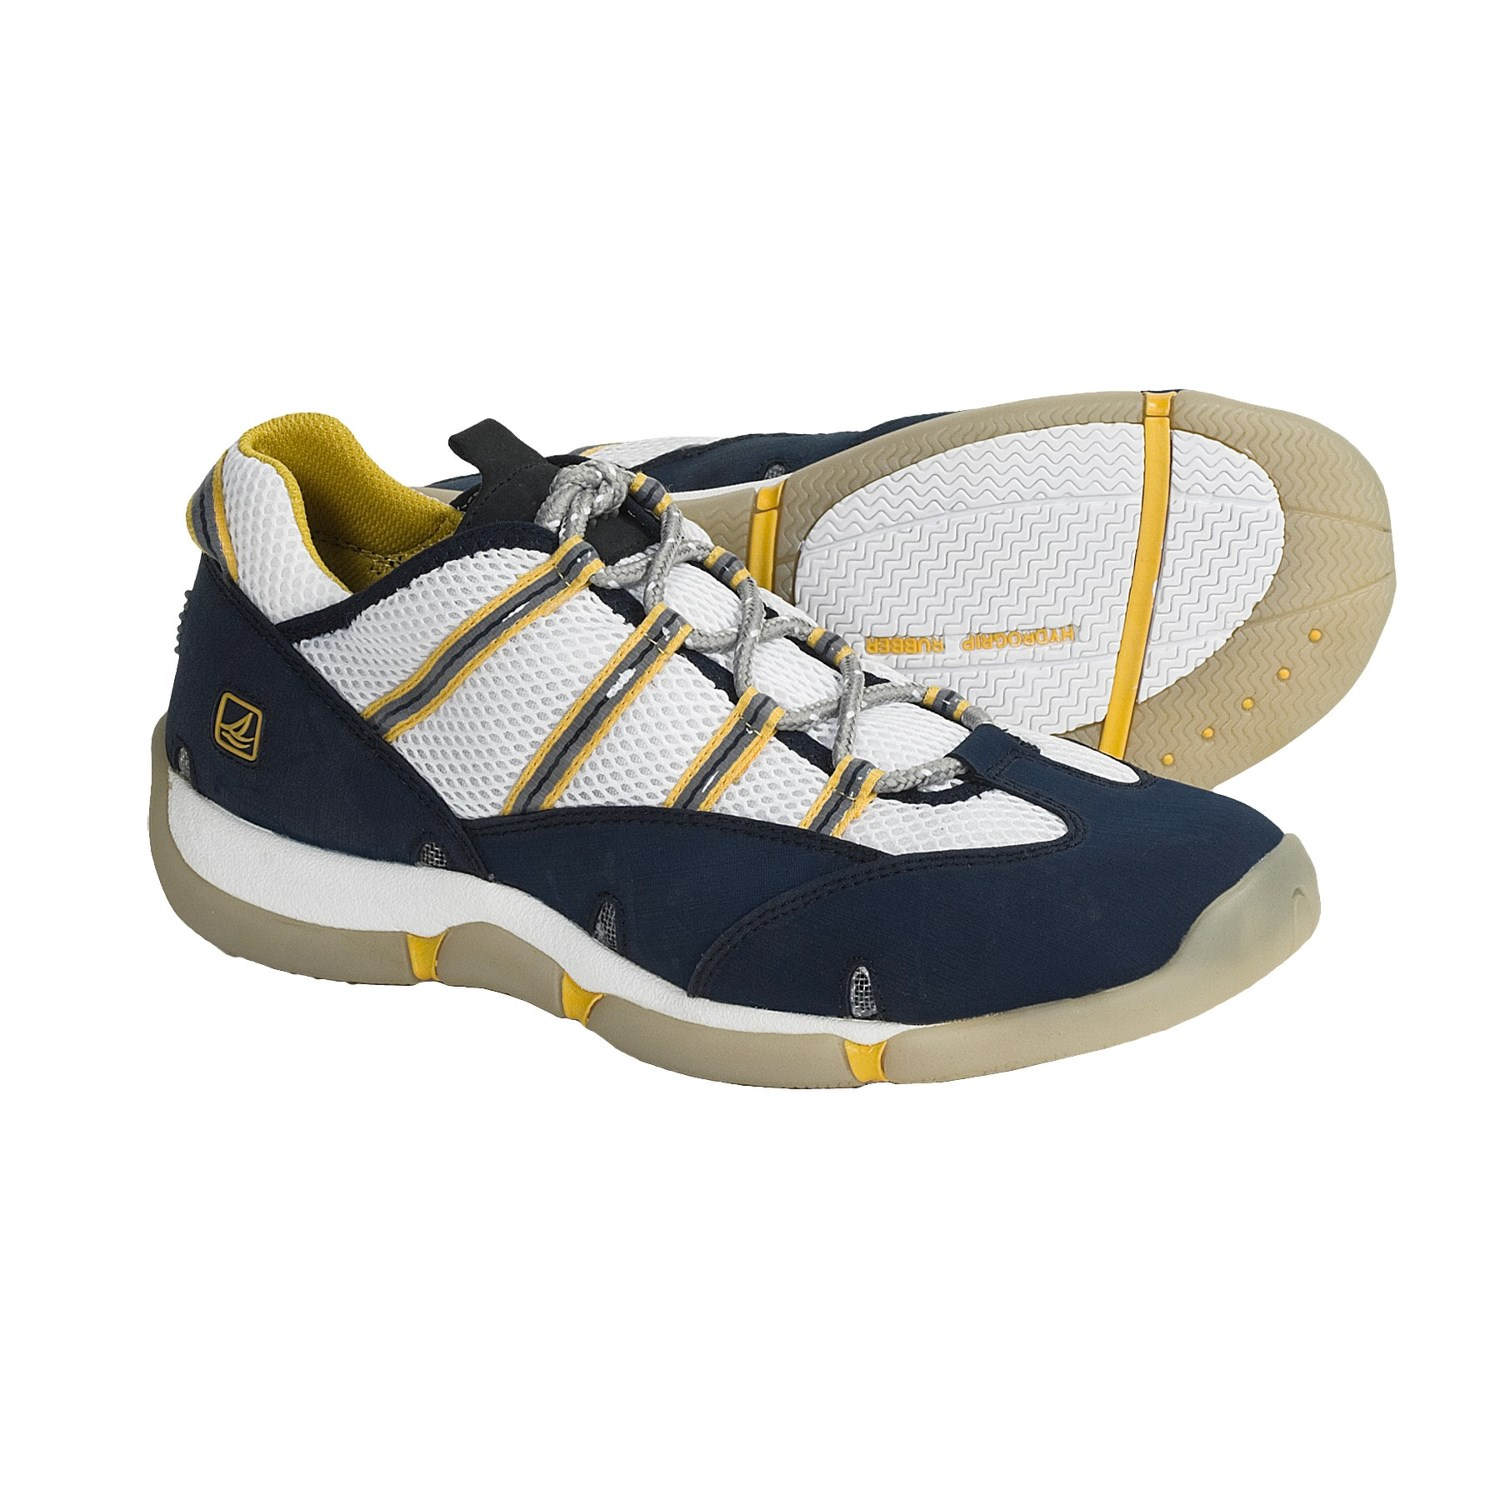 Sperry Top-Sider Figawi Sailing Shoes (For Men) 3550P